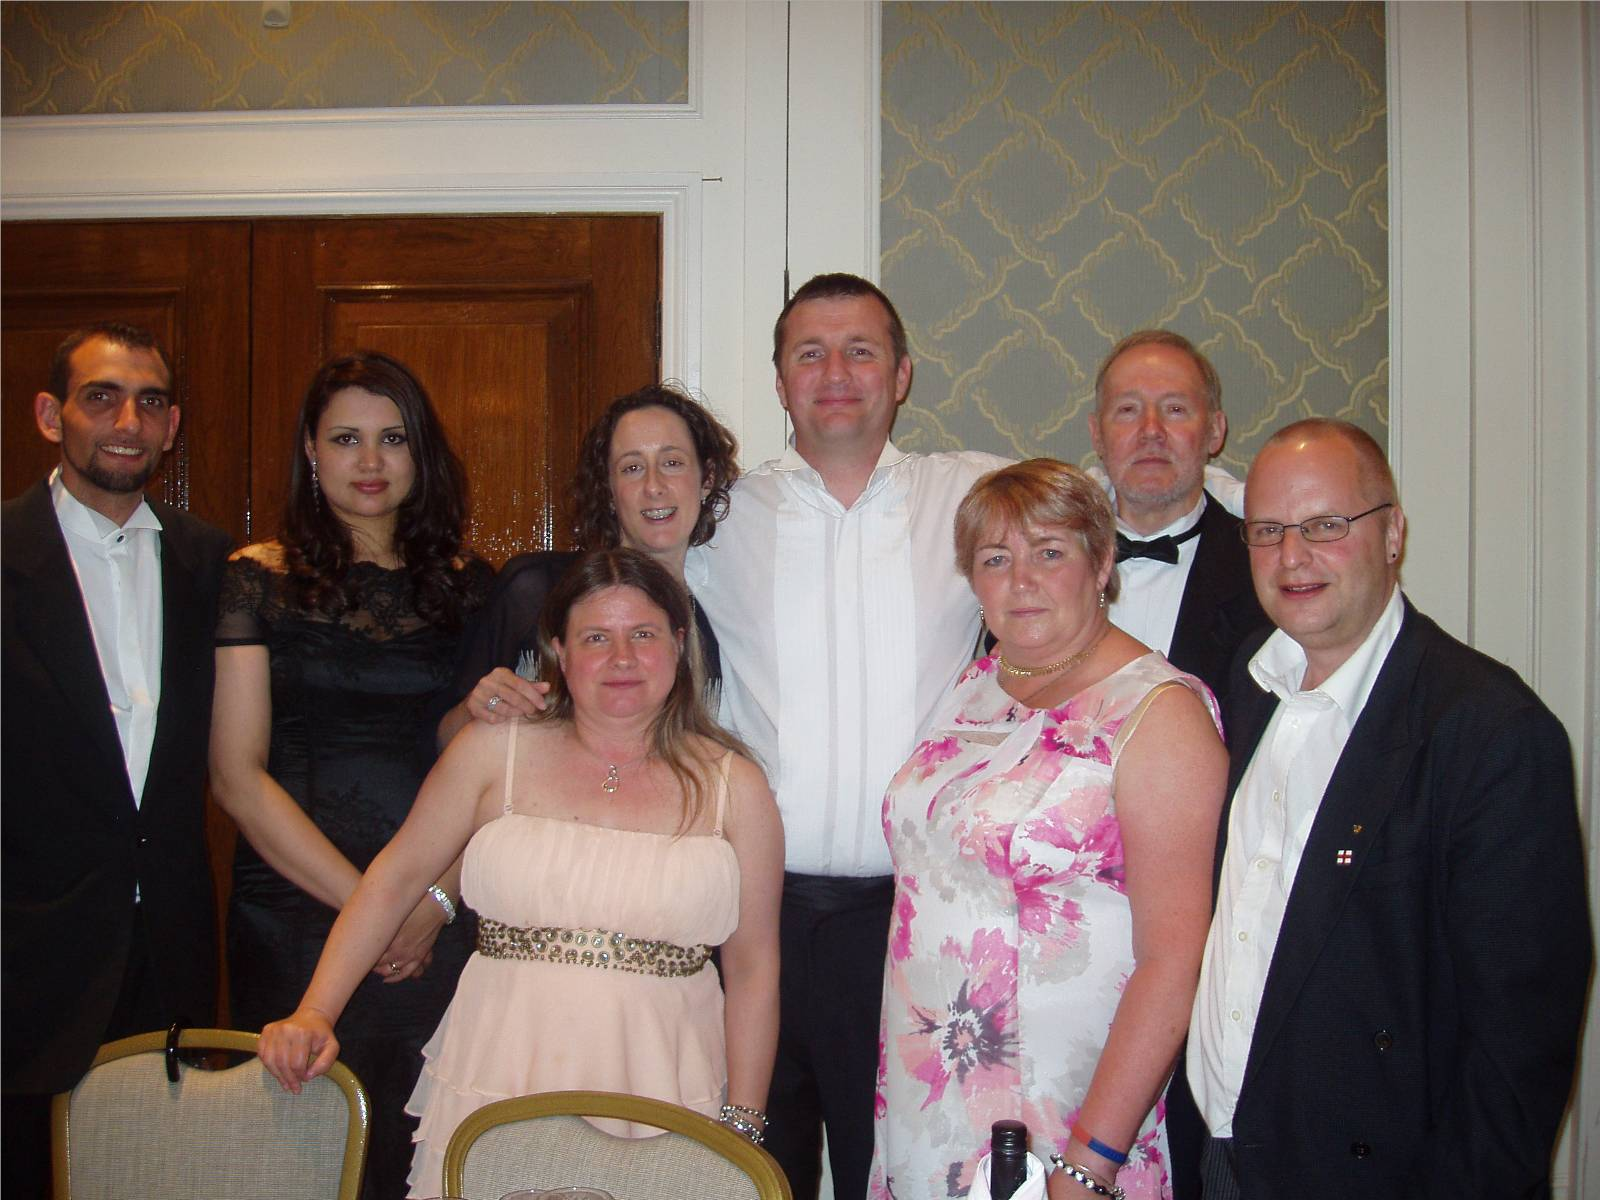 From left to Right: Bro.David and Kaveri, Helen, Charlotte and Bro.Stephen, Christine and W.Bro.Peter and Bro.Paul